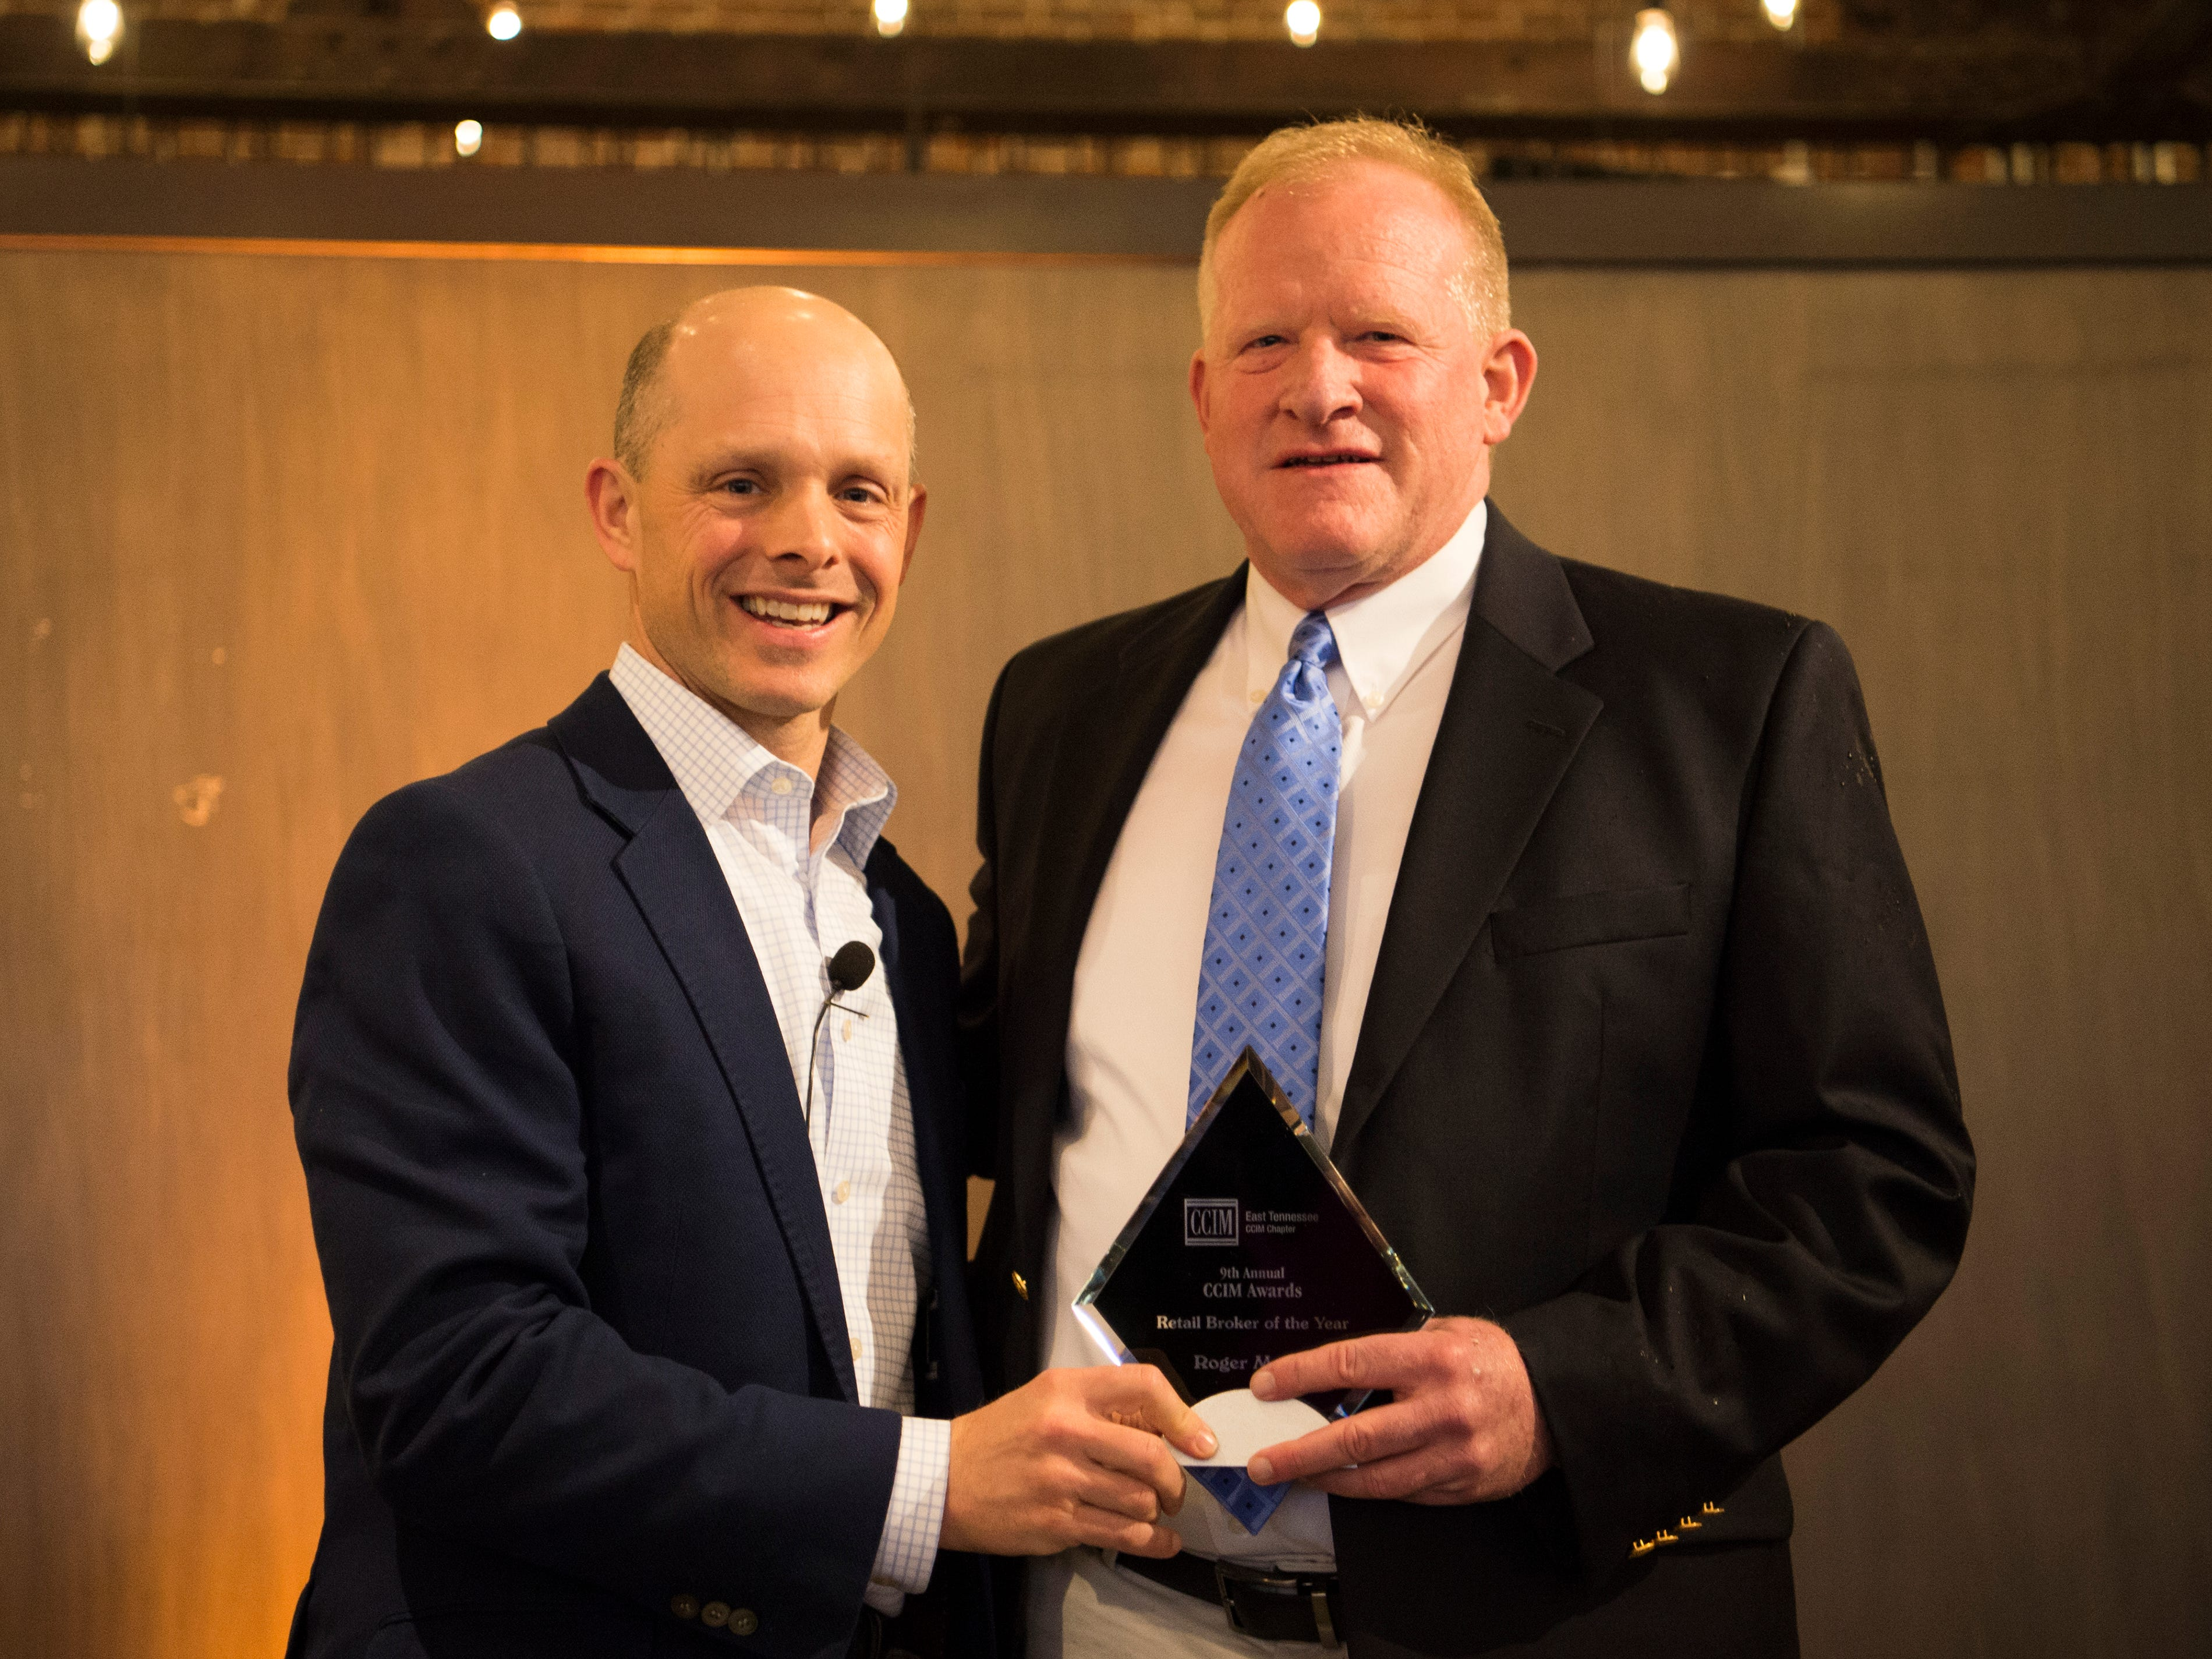 Roger Moore, right, is awarded Retail Broker of the Year at the Commercial and Residential Real Estate Awards held at The Press Room in Knoxville on Tuesday, February 12, 2019.